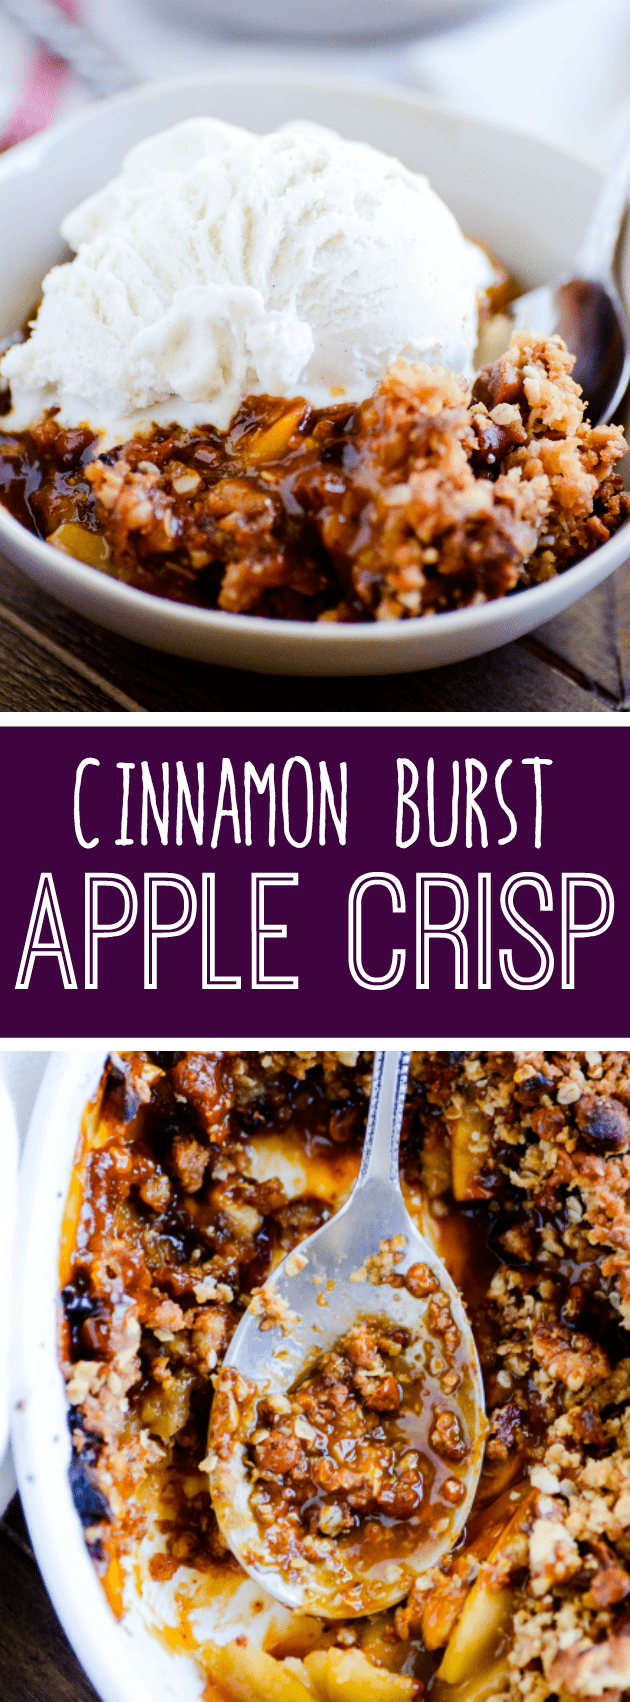 Here's a recipe for a warm, gooey, comforting crisp full of hearty oats, juicy apples, and cinnamon morsels.